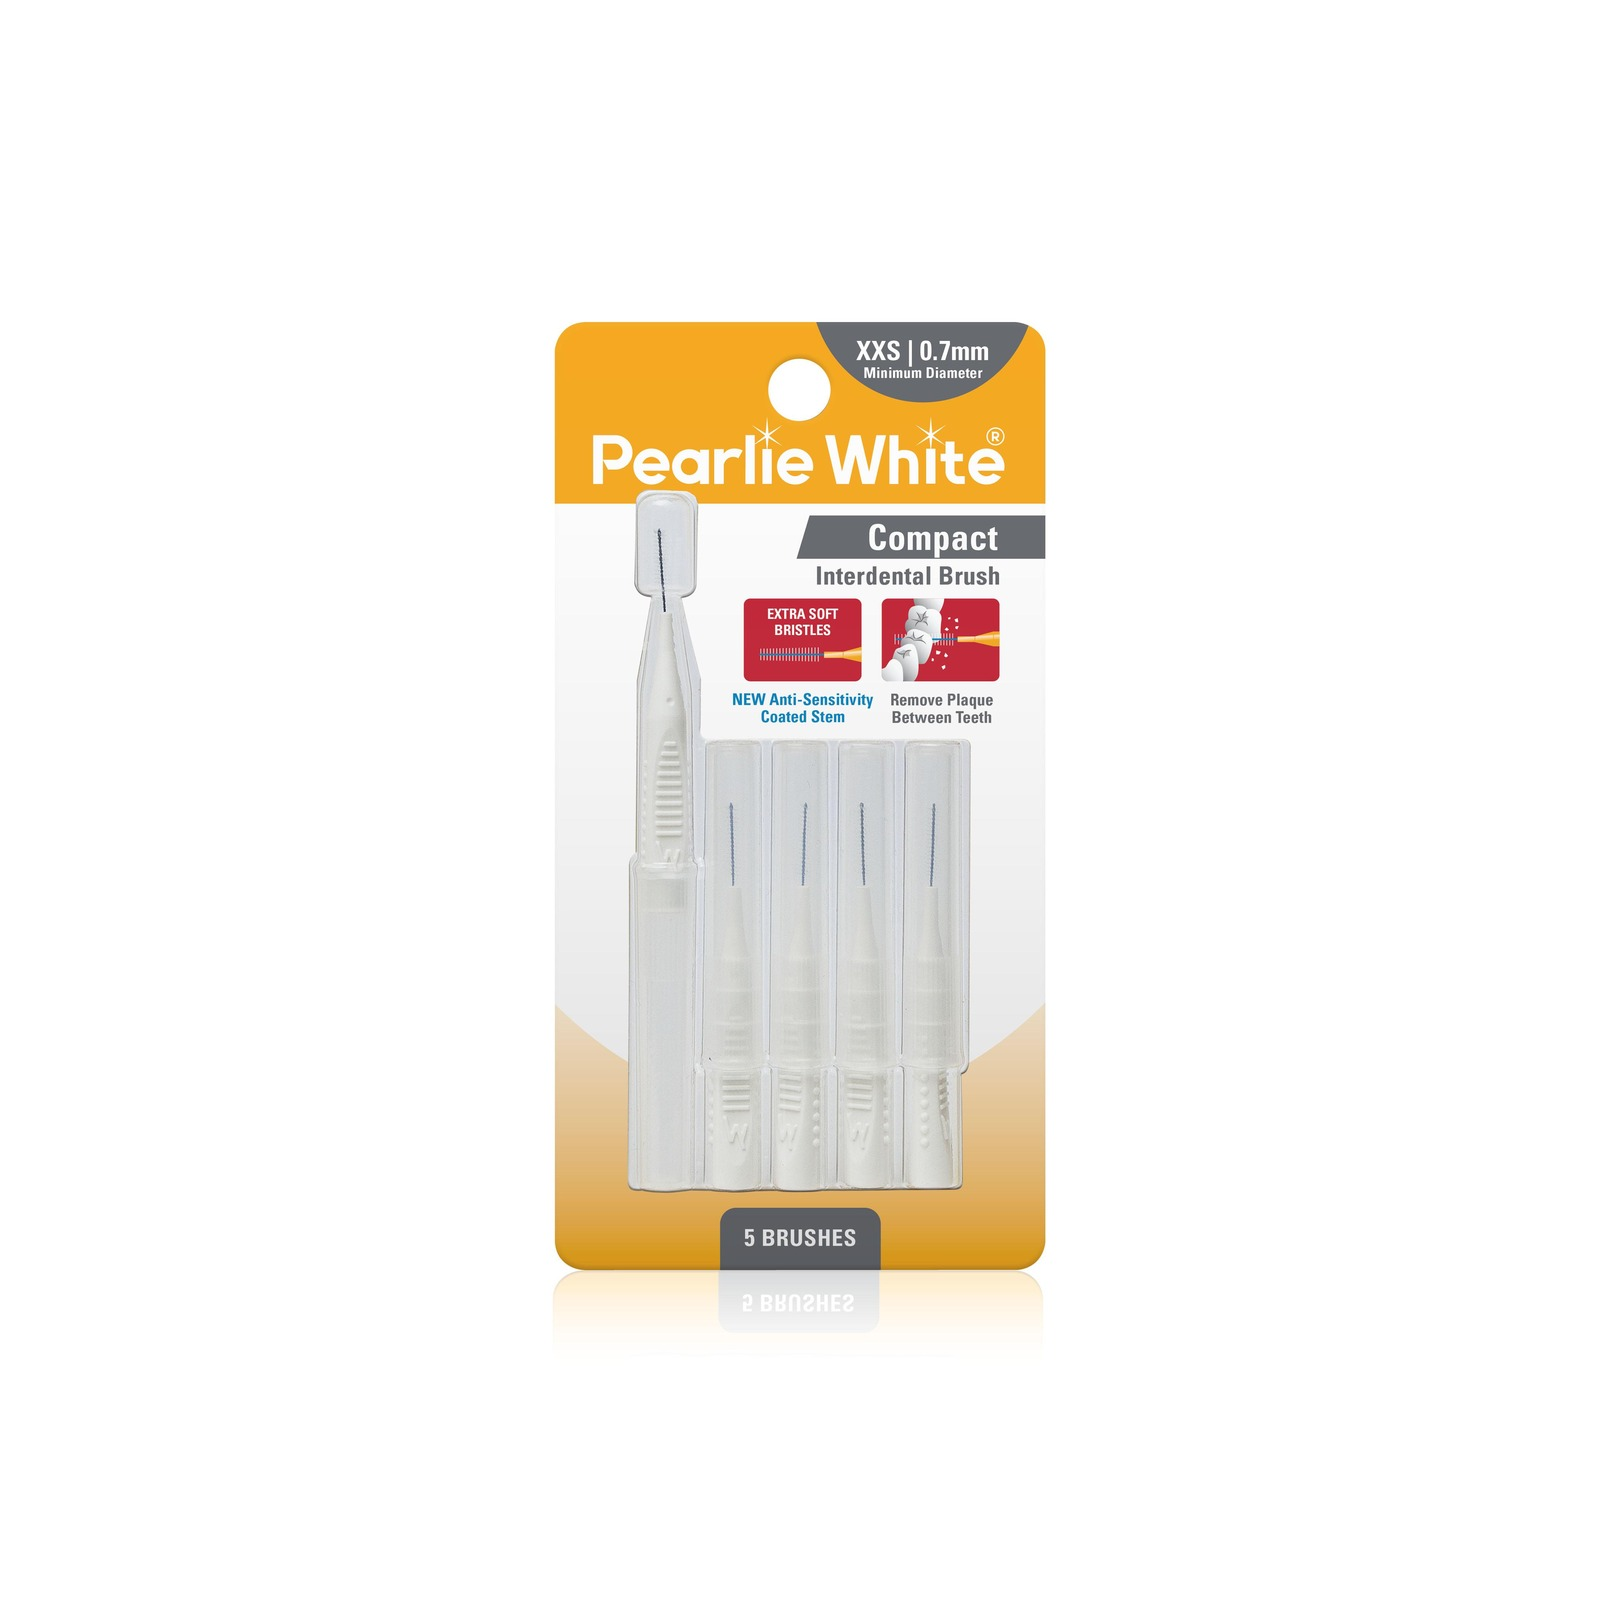 Pearlie White Compact Interdental Brushes XXS 0.7mm